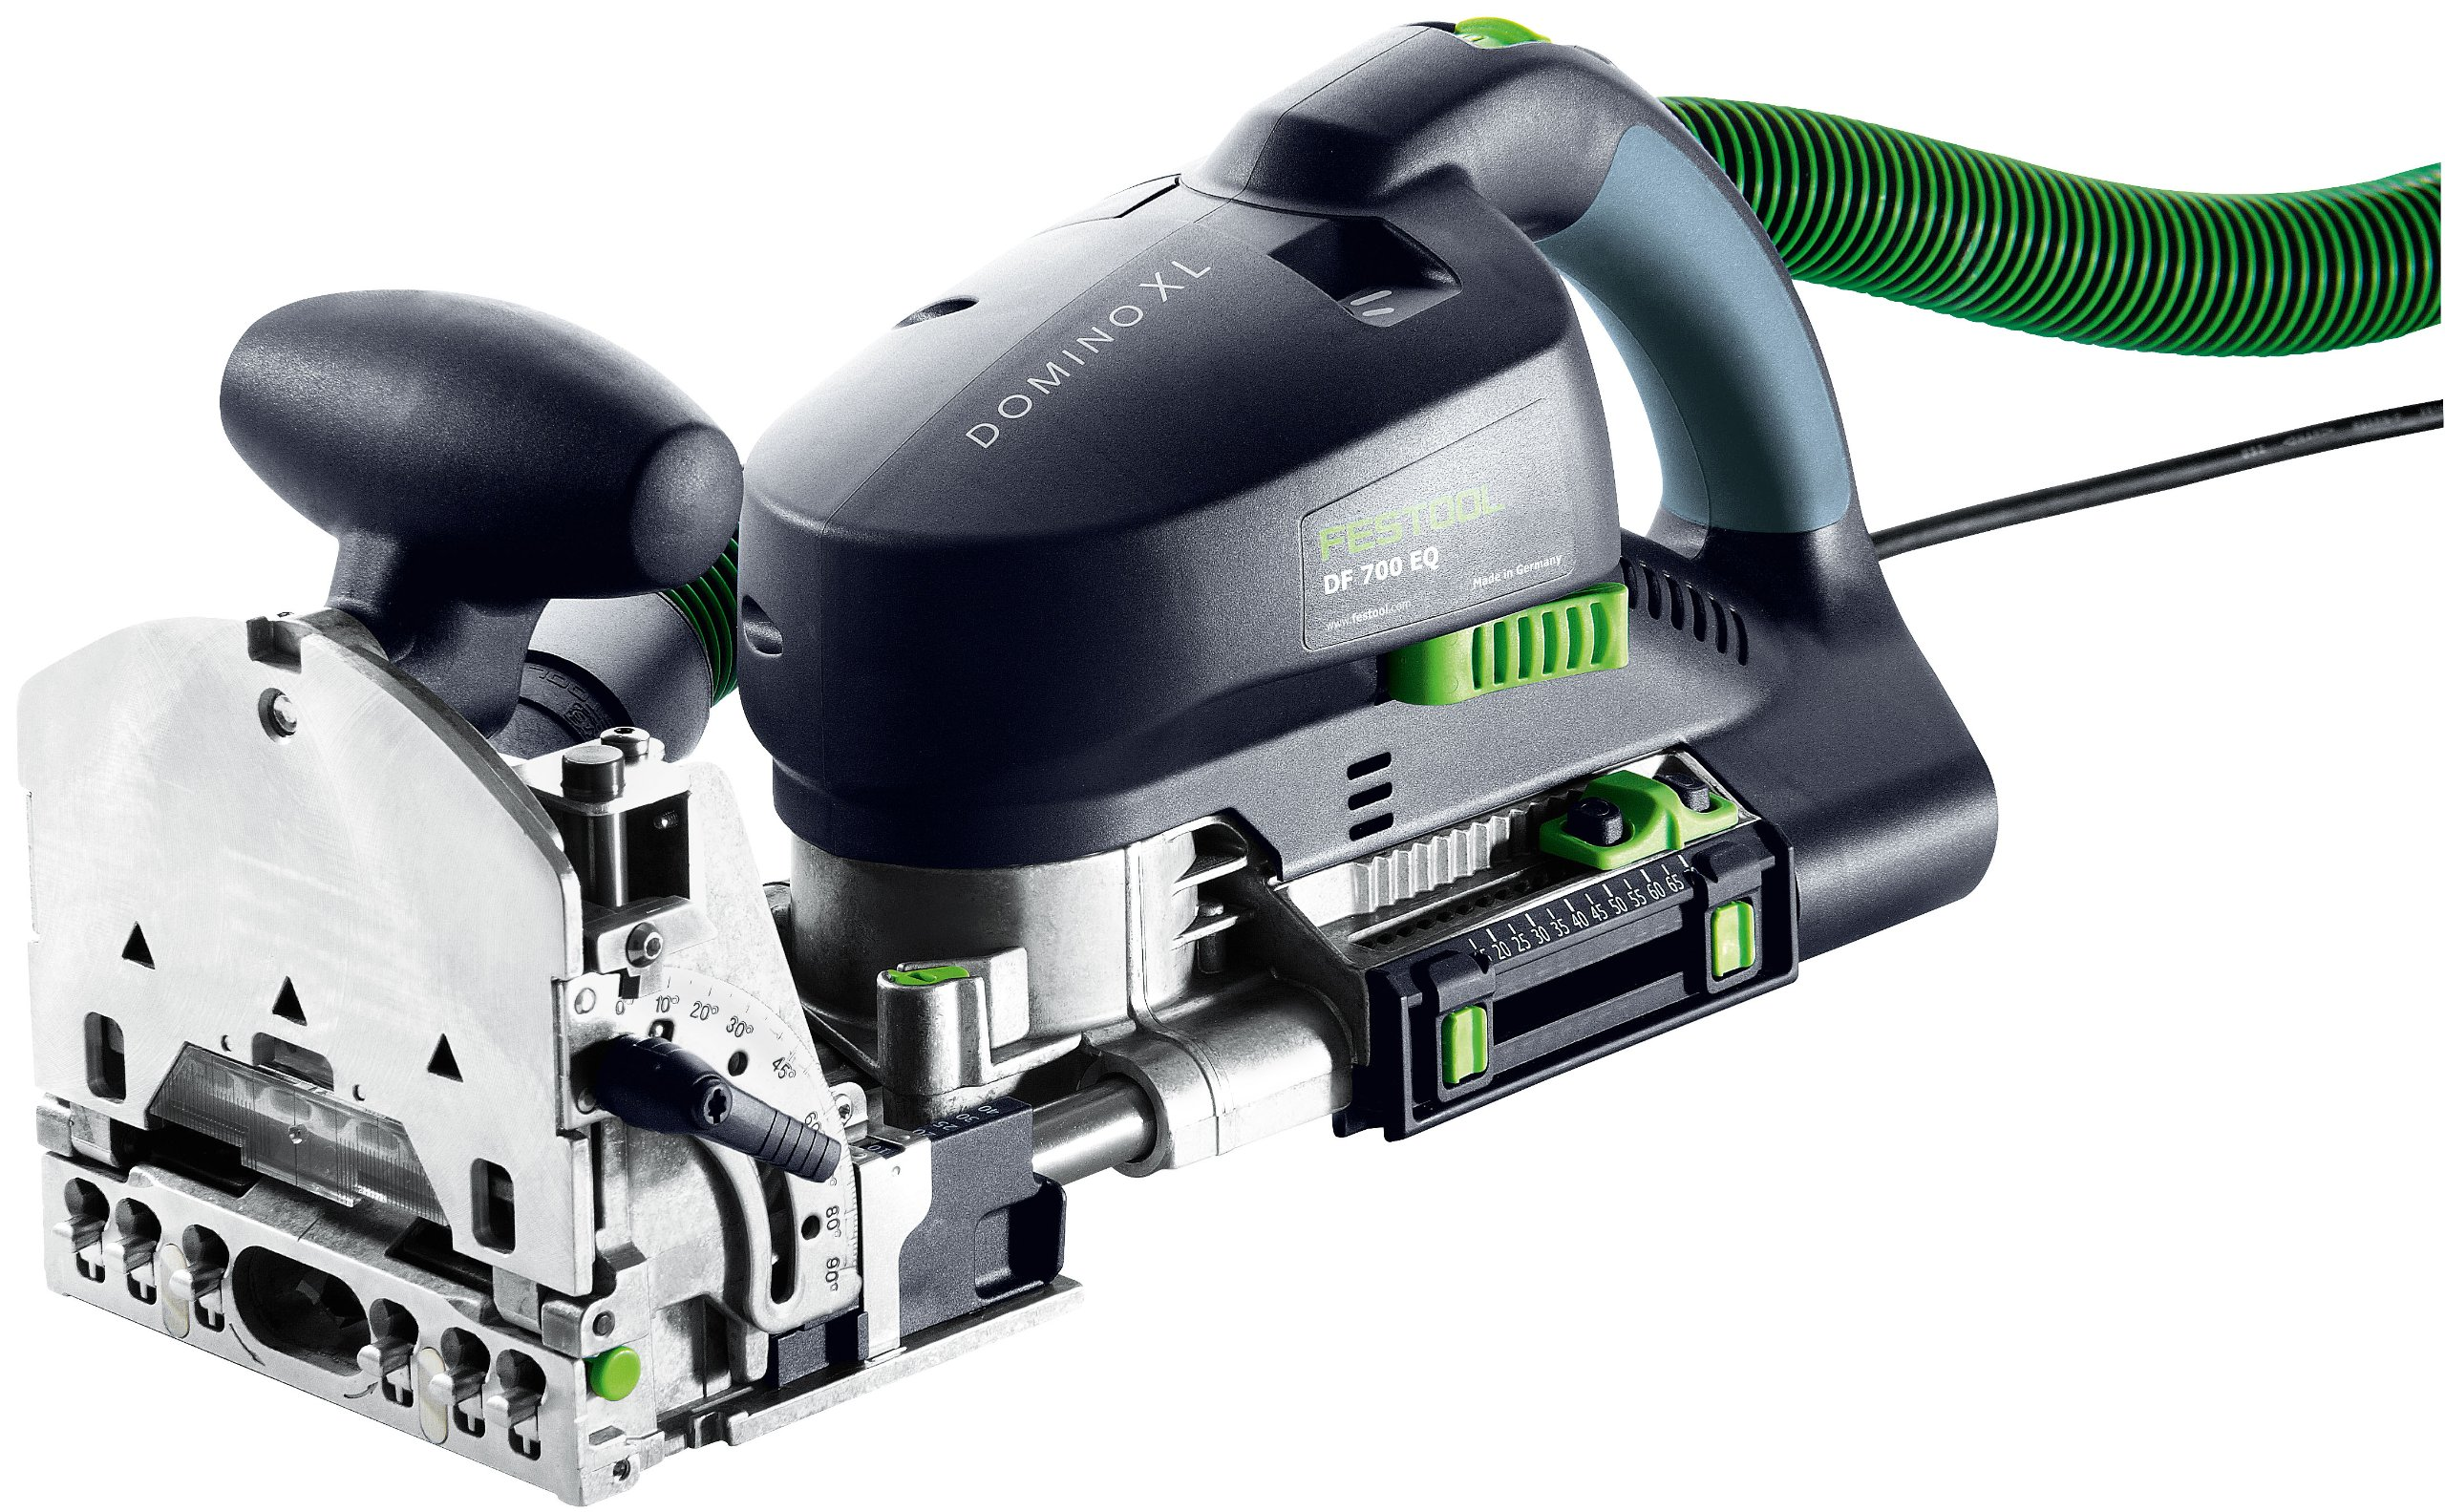 Festool 574422 XL DF 700 Domino Joiner